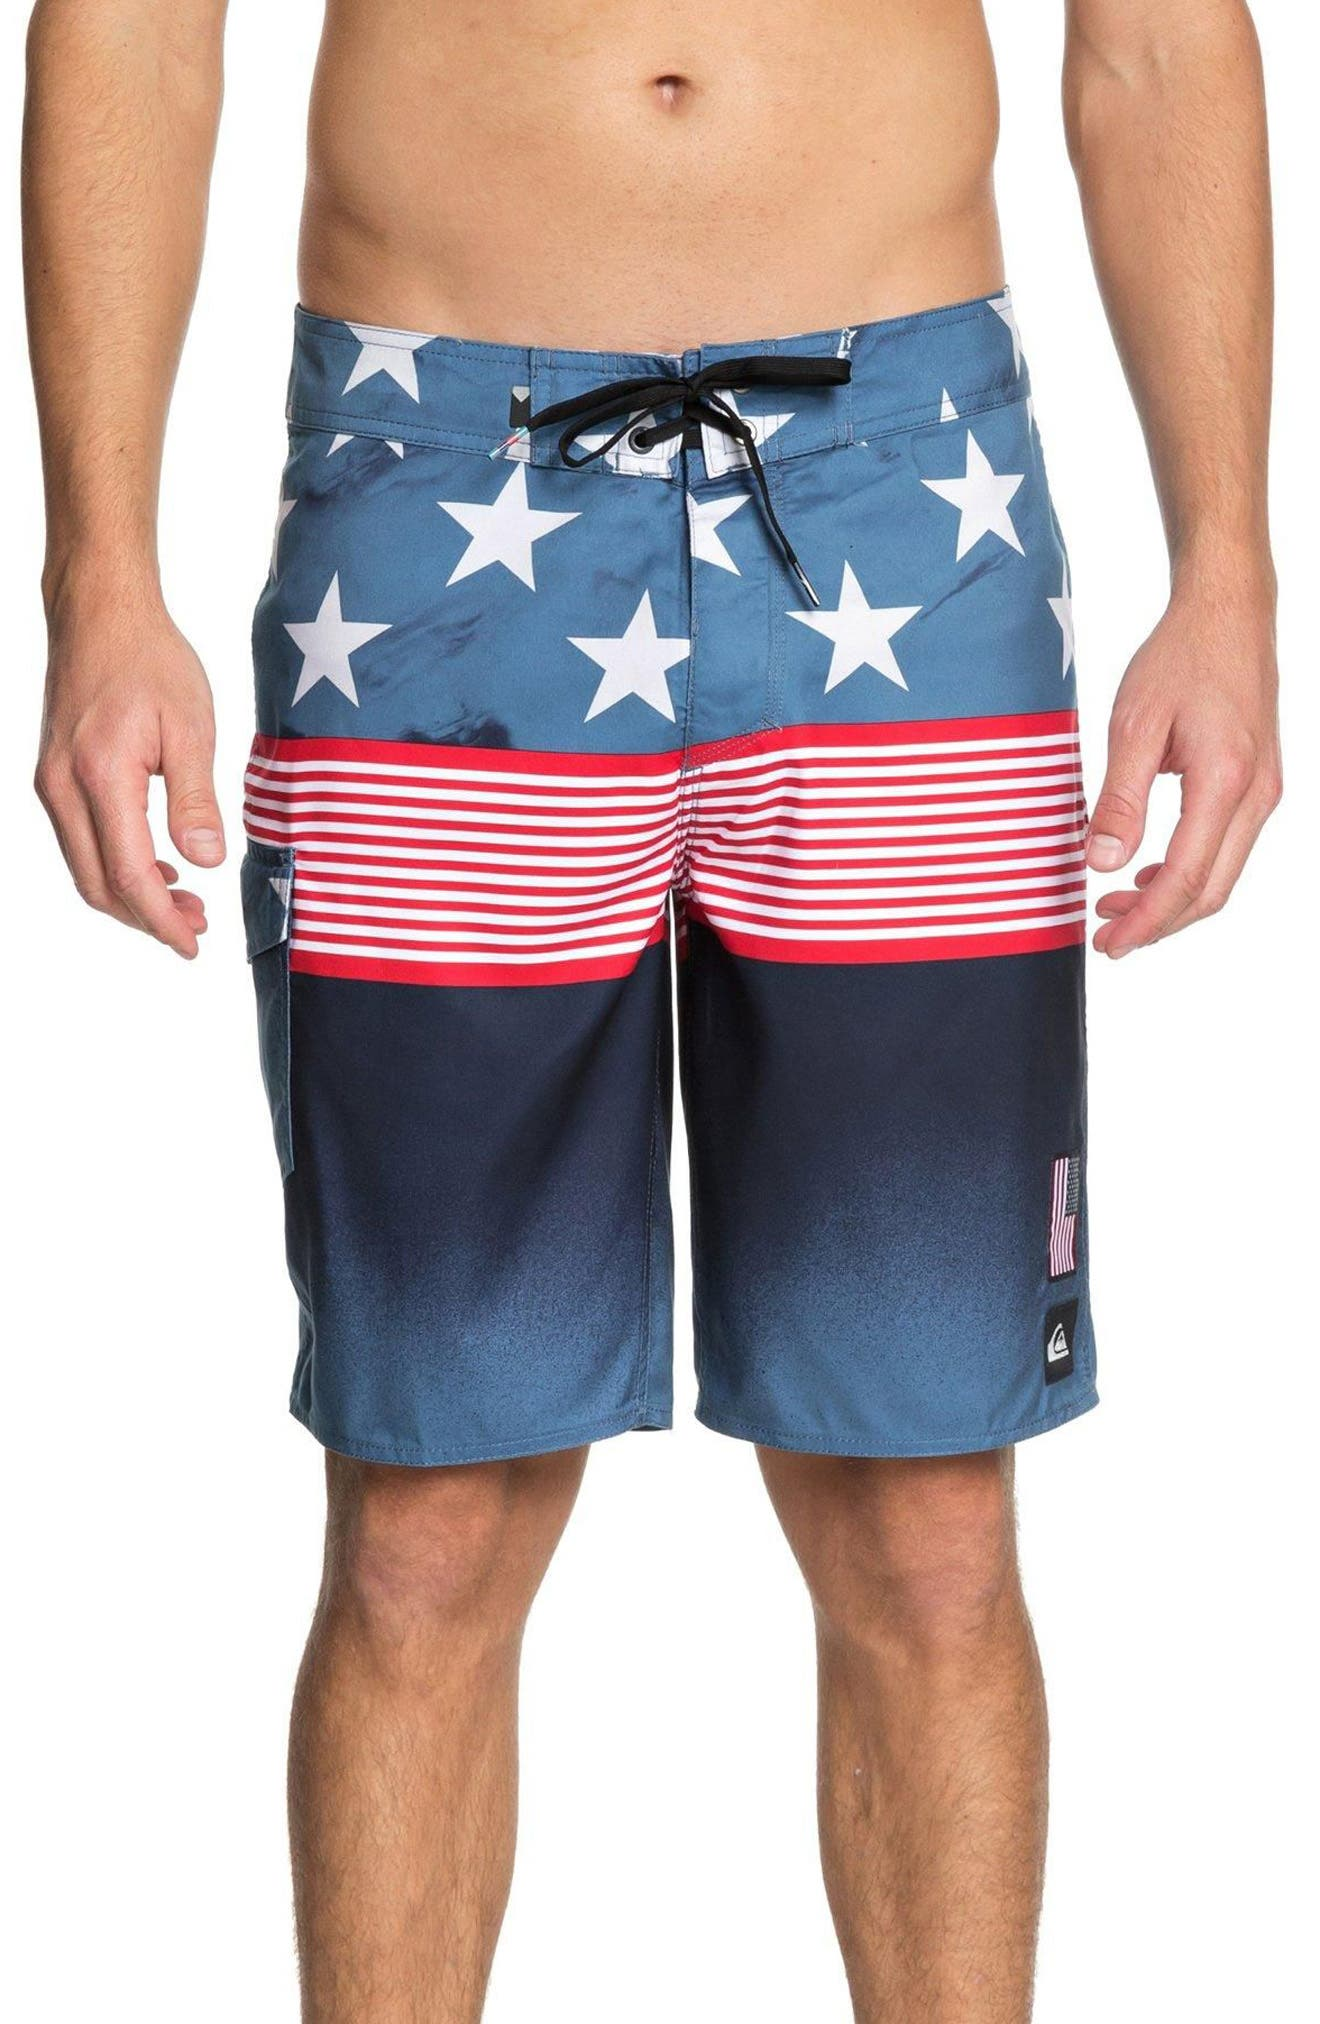 Division Independent Board Shorts,                         Main,                         color, 410